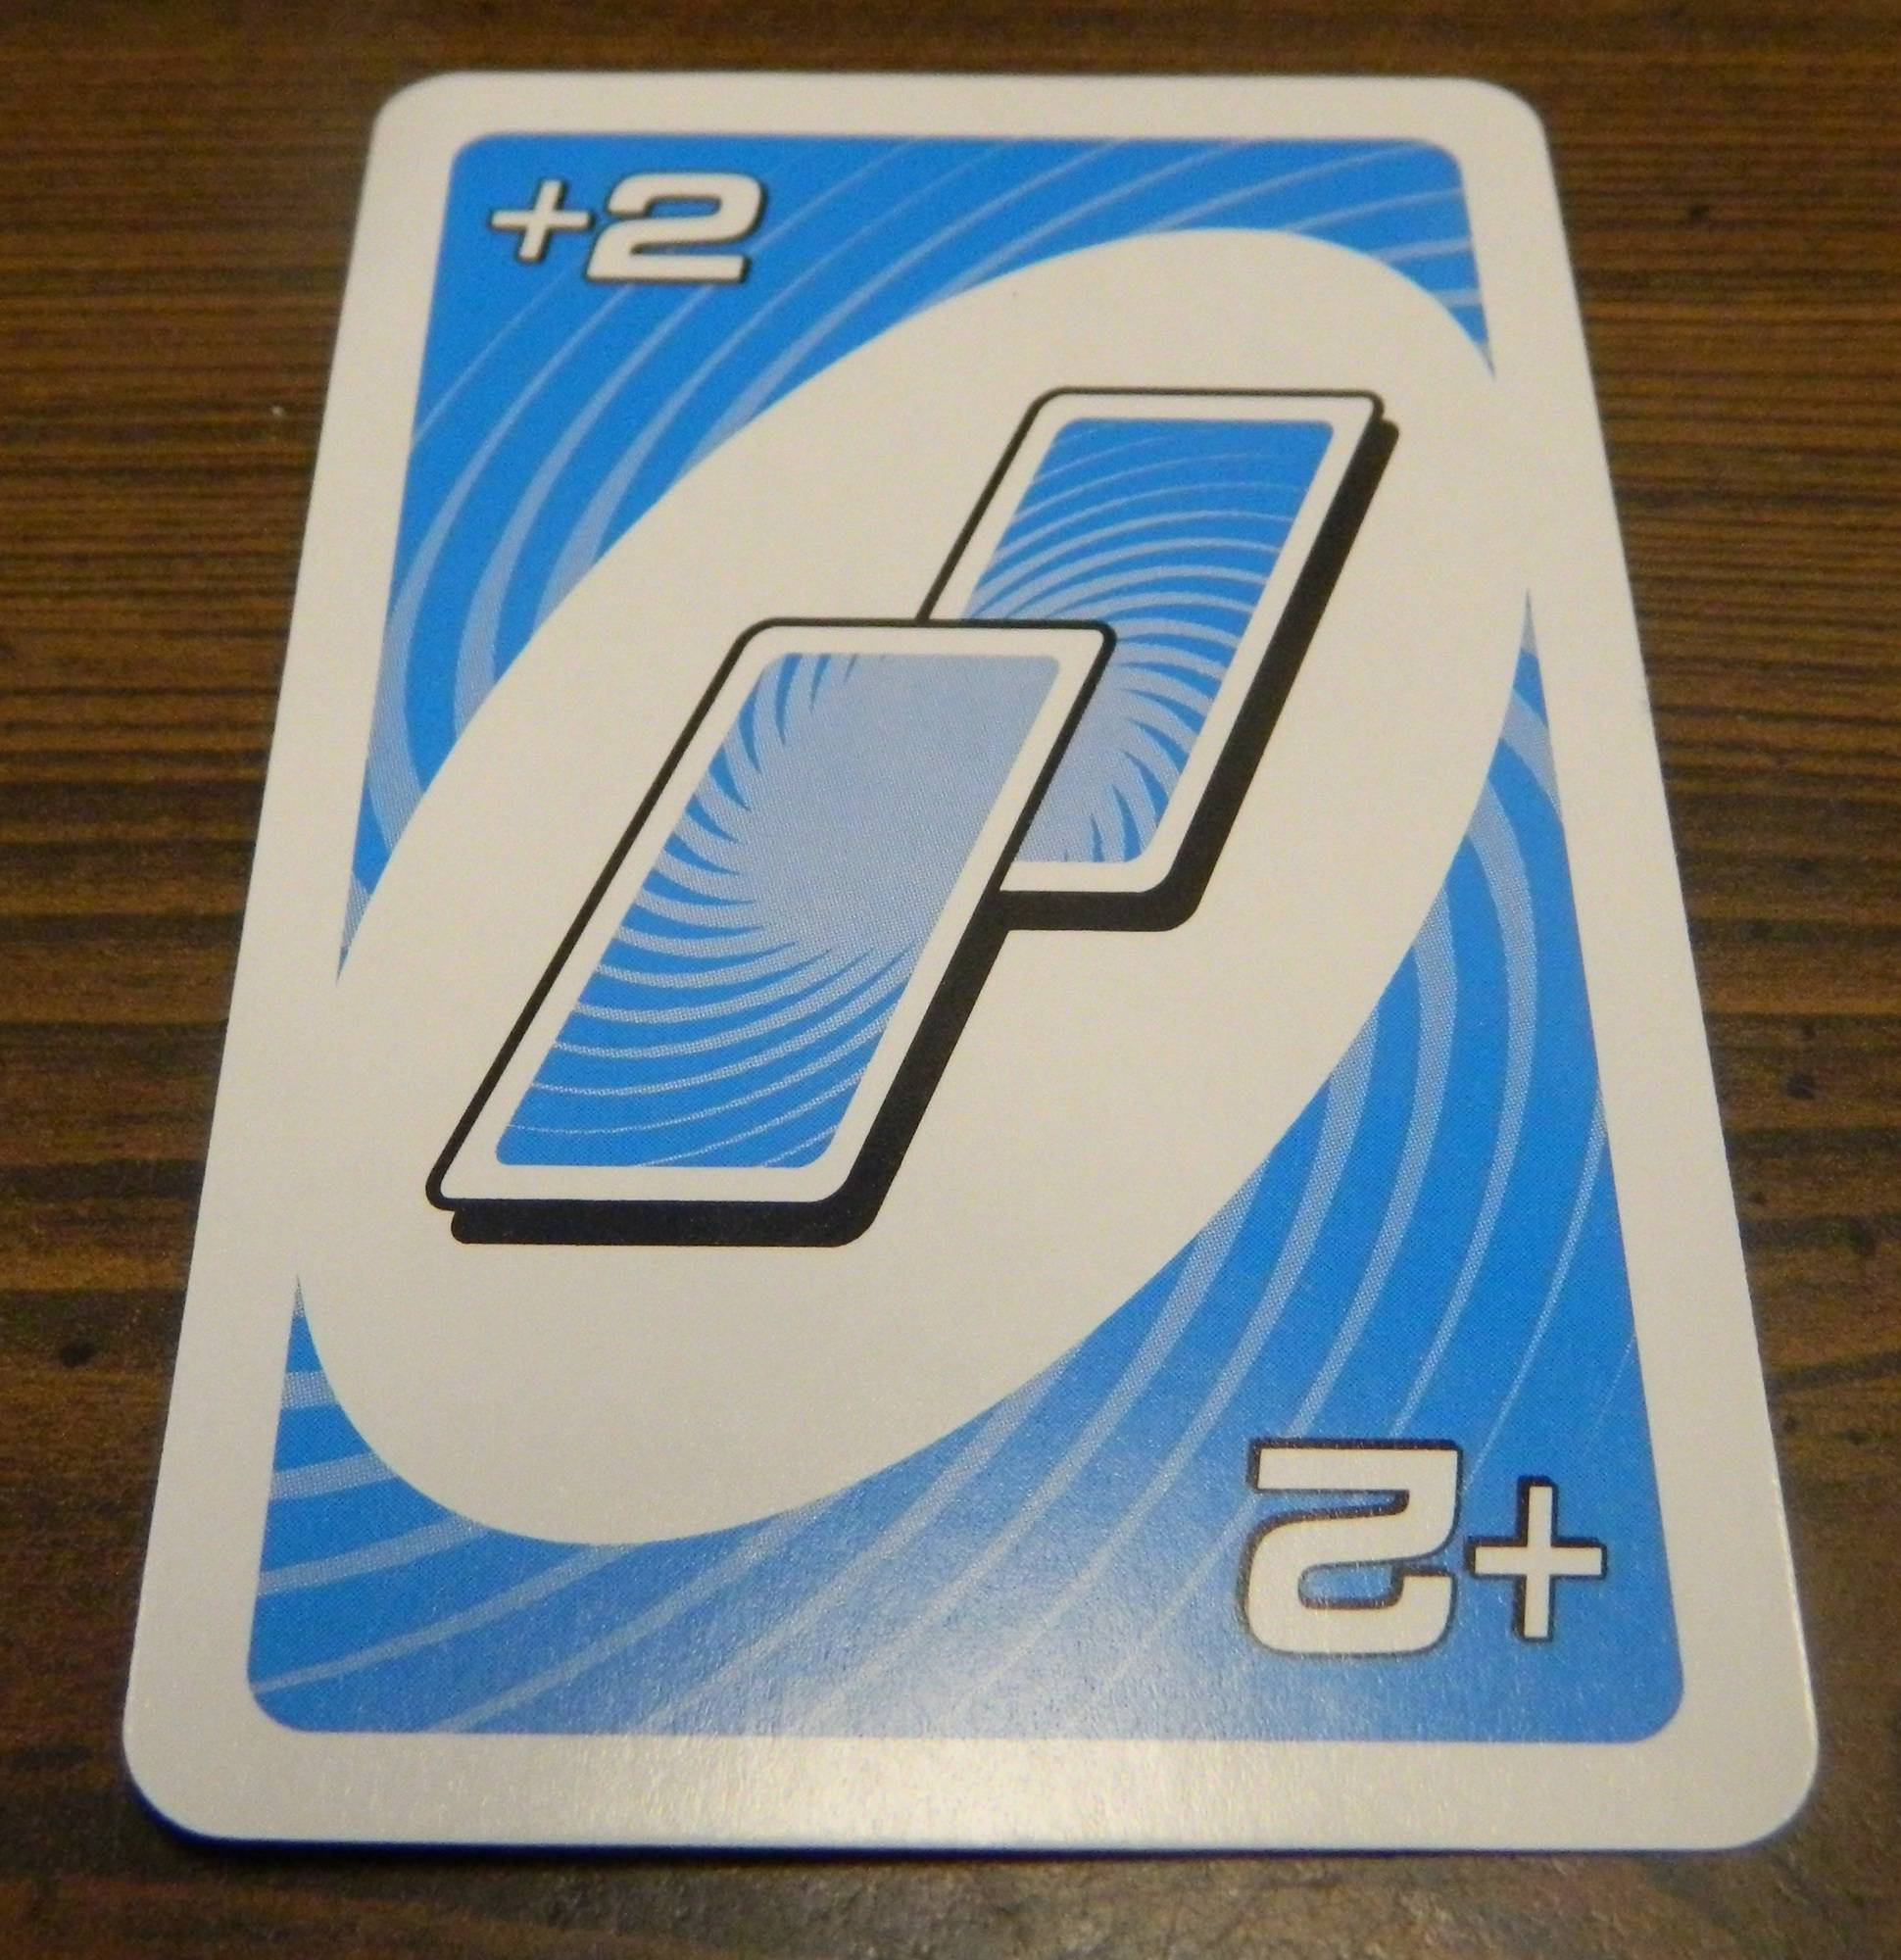 UNO Spin Card Game Review and Rules | Geeky Hobbies